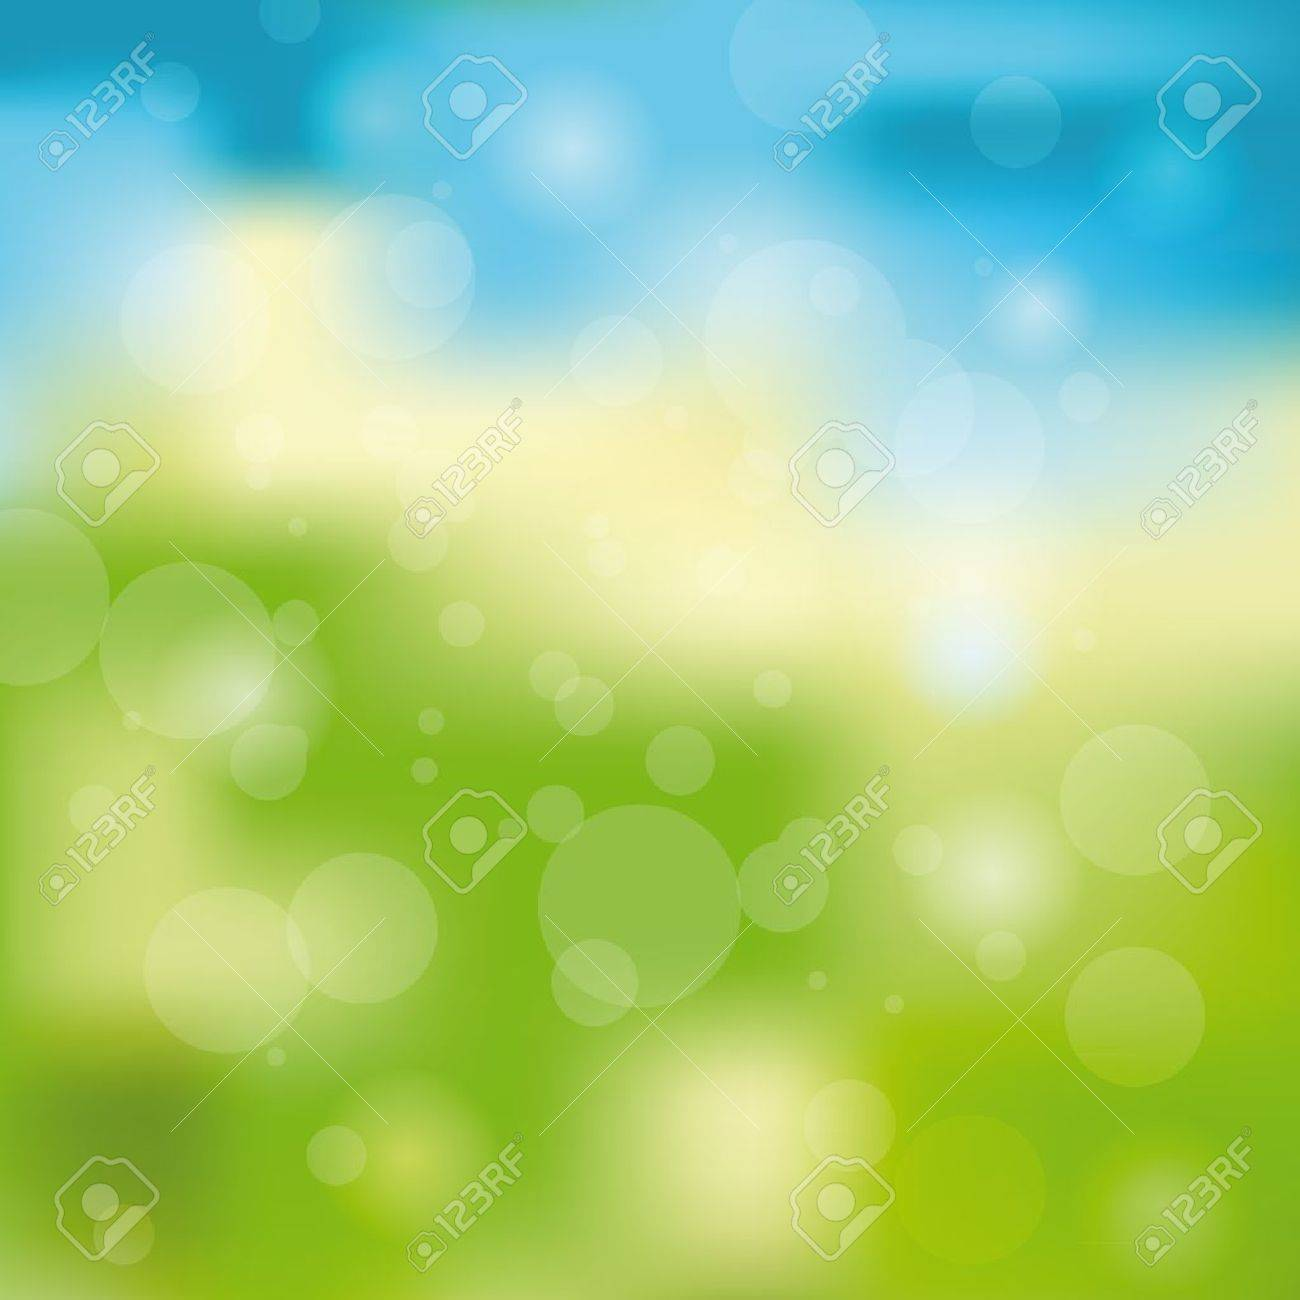 Light Blue Green Abstract Background Green And Blue Light Abstract